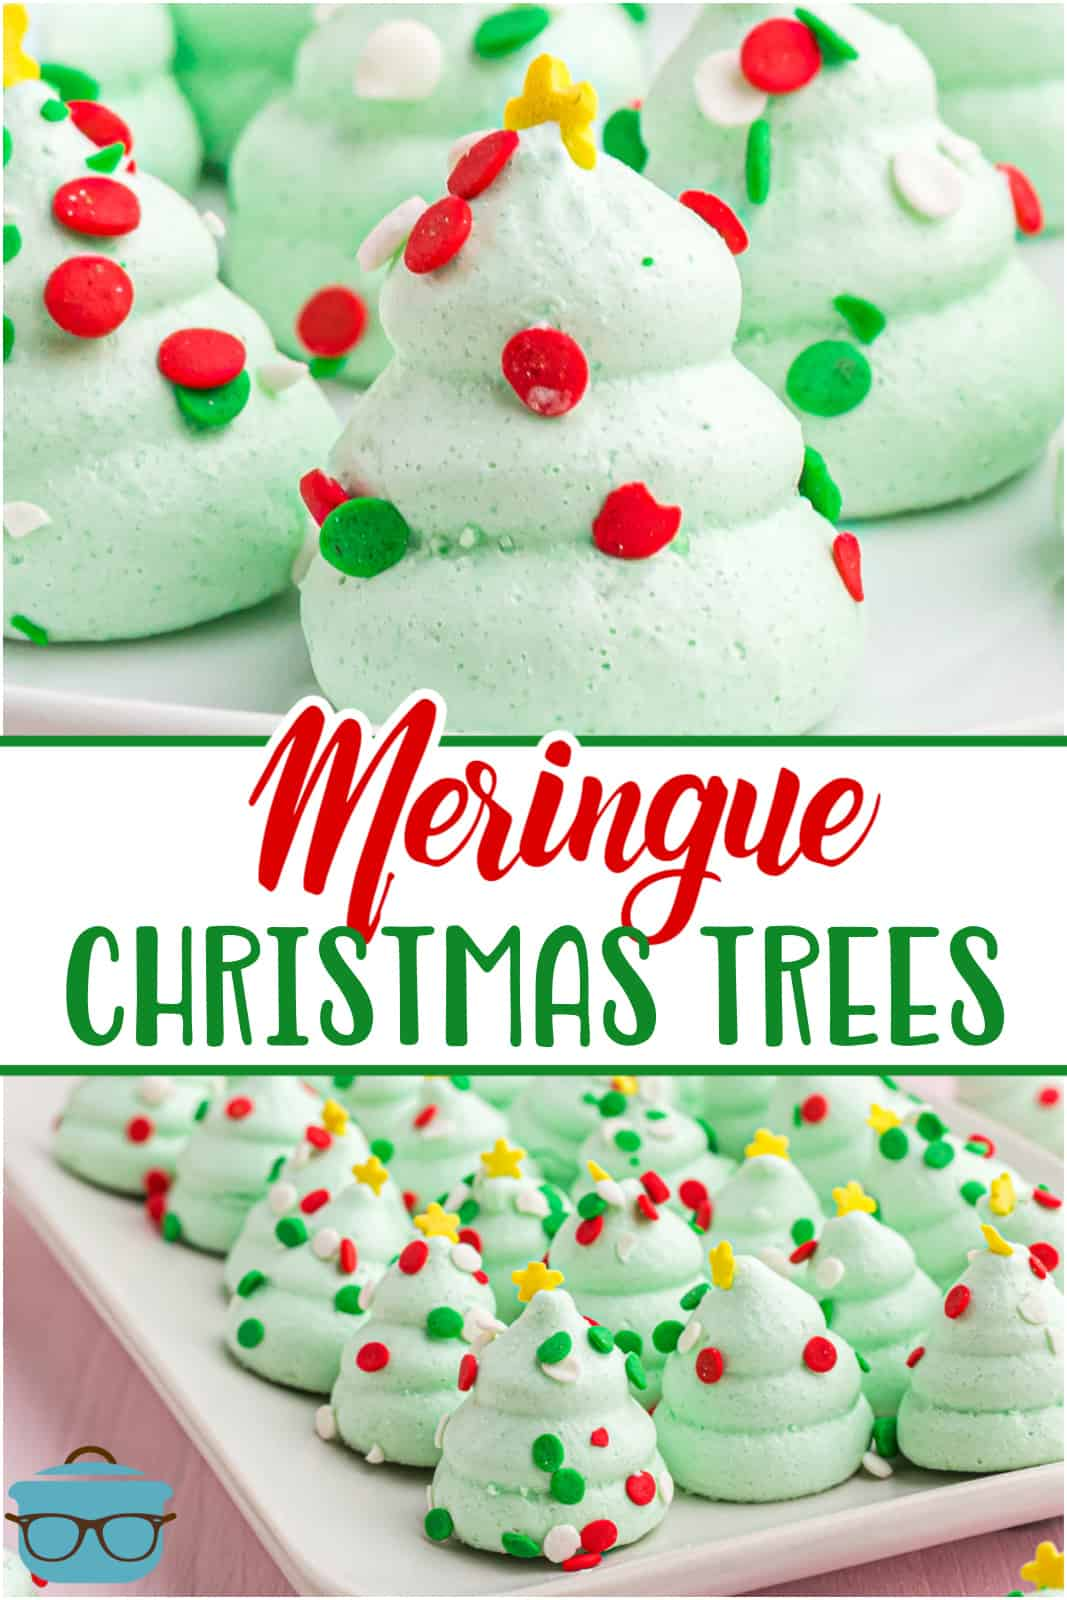 These Easy Meringue Christmas Trees are so simple to make, taste delicious and are absolutely adorable! Kids and adults love these meringue treats!